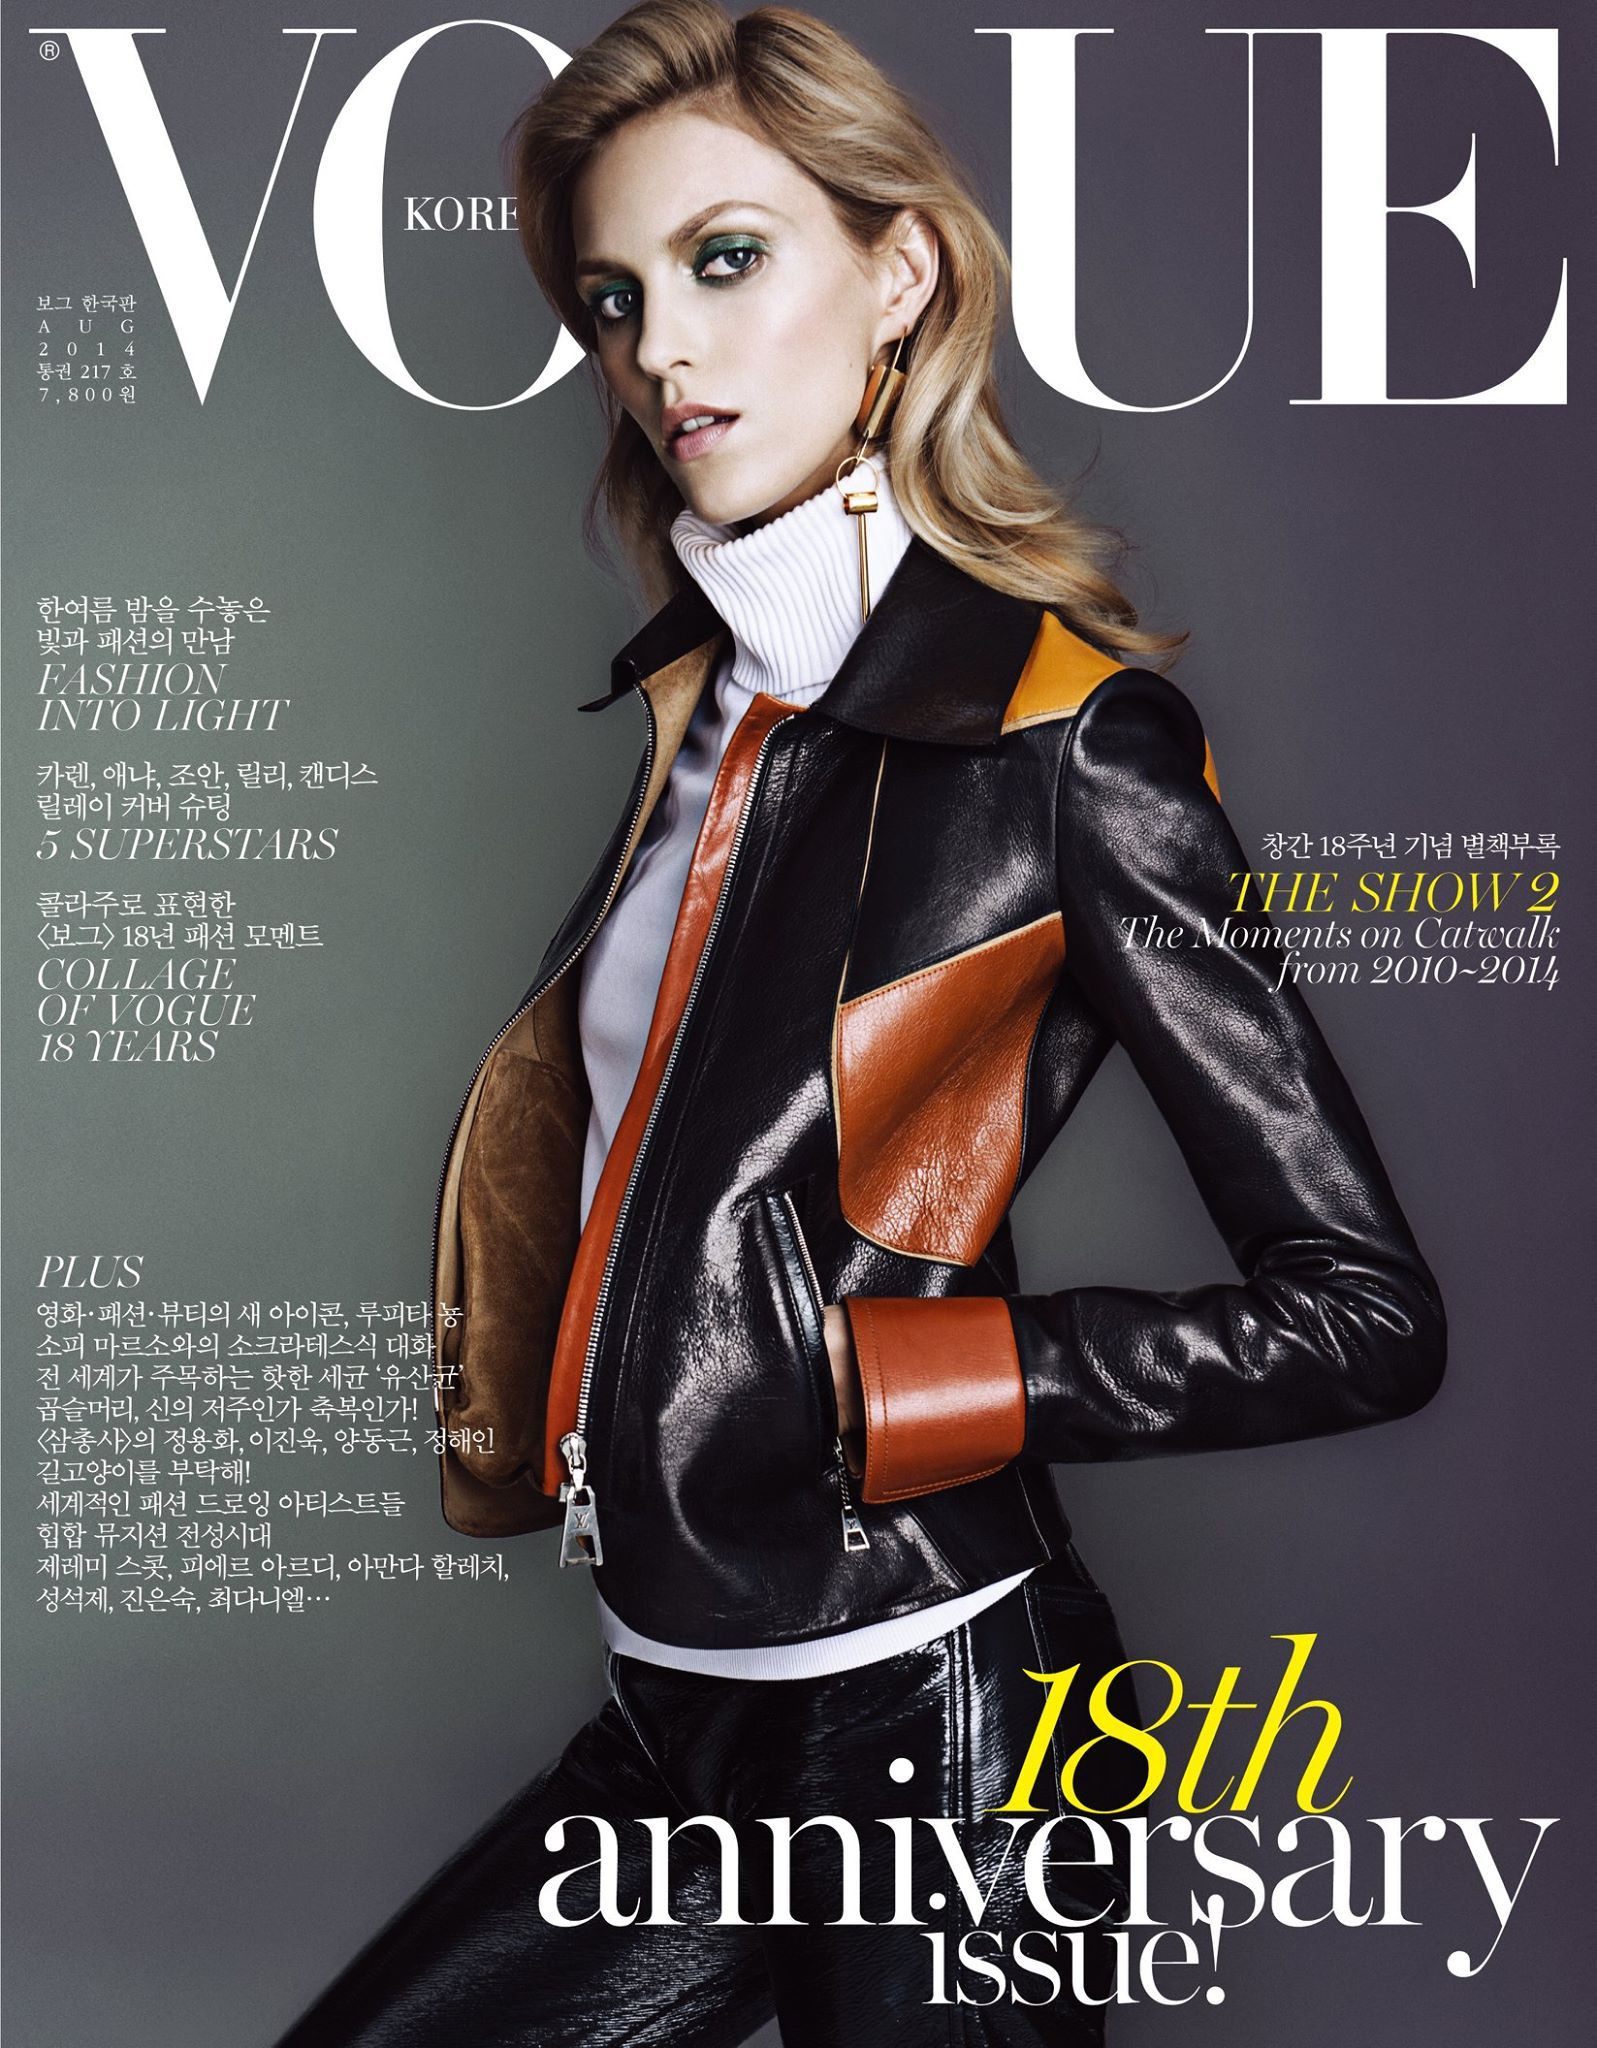 Fashion week Donaldson lily vogue korea august for lady